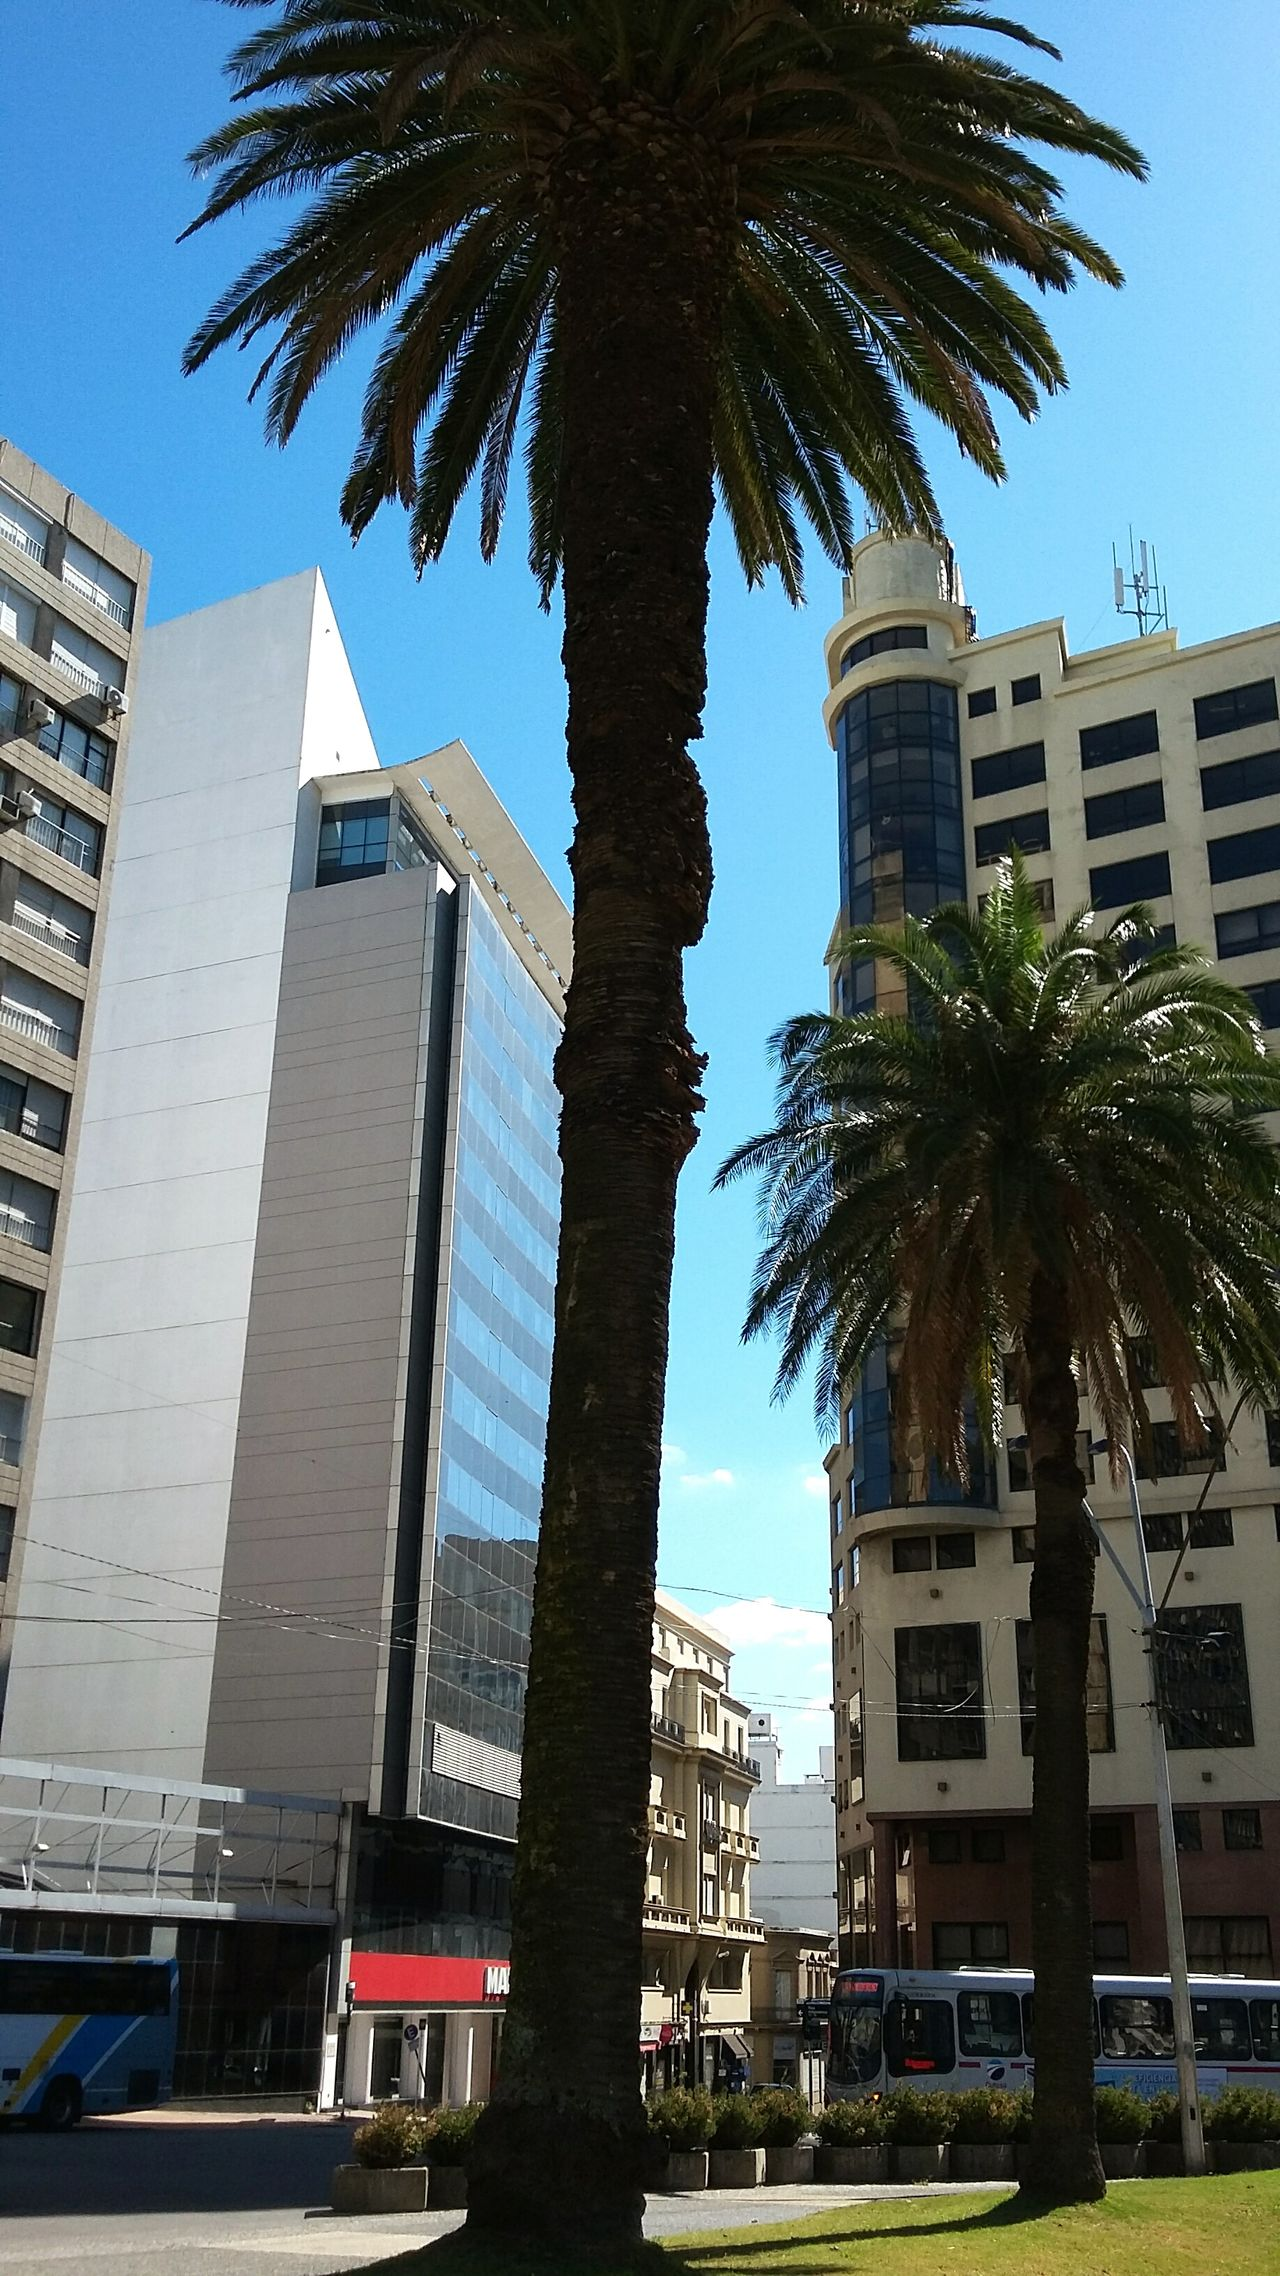 Lonely giant. Palm Tree Architecture Low Angle View Built Structure Skyscraper City Tree Building Exterior Travel Destinations Business Finance And Industry Sky Outdoors Day No People Modern Cityscape Glass Skyscrapers Sky And Clouds City City Life Montevideo Curtain Walls Architecture Plants